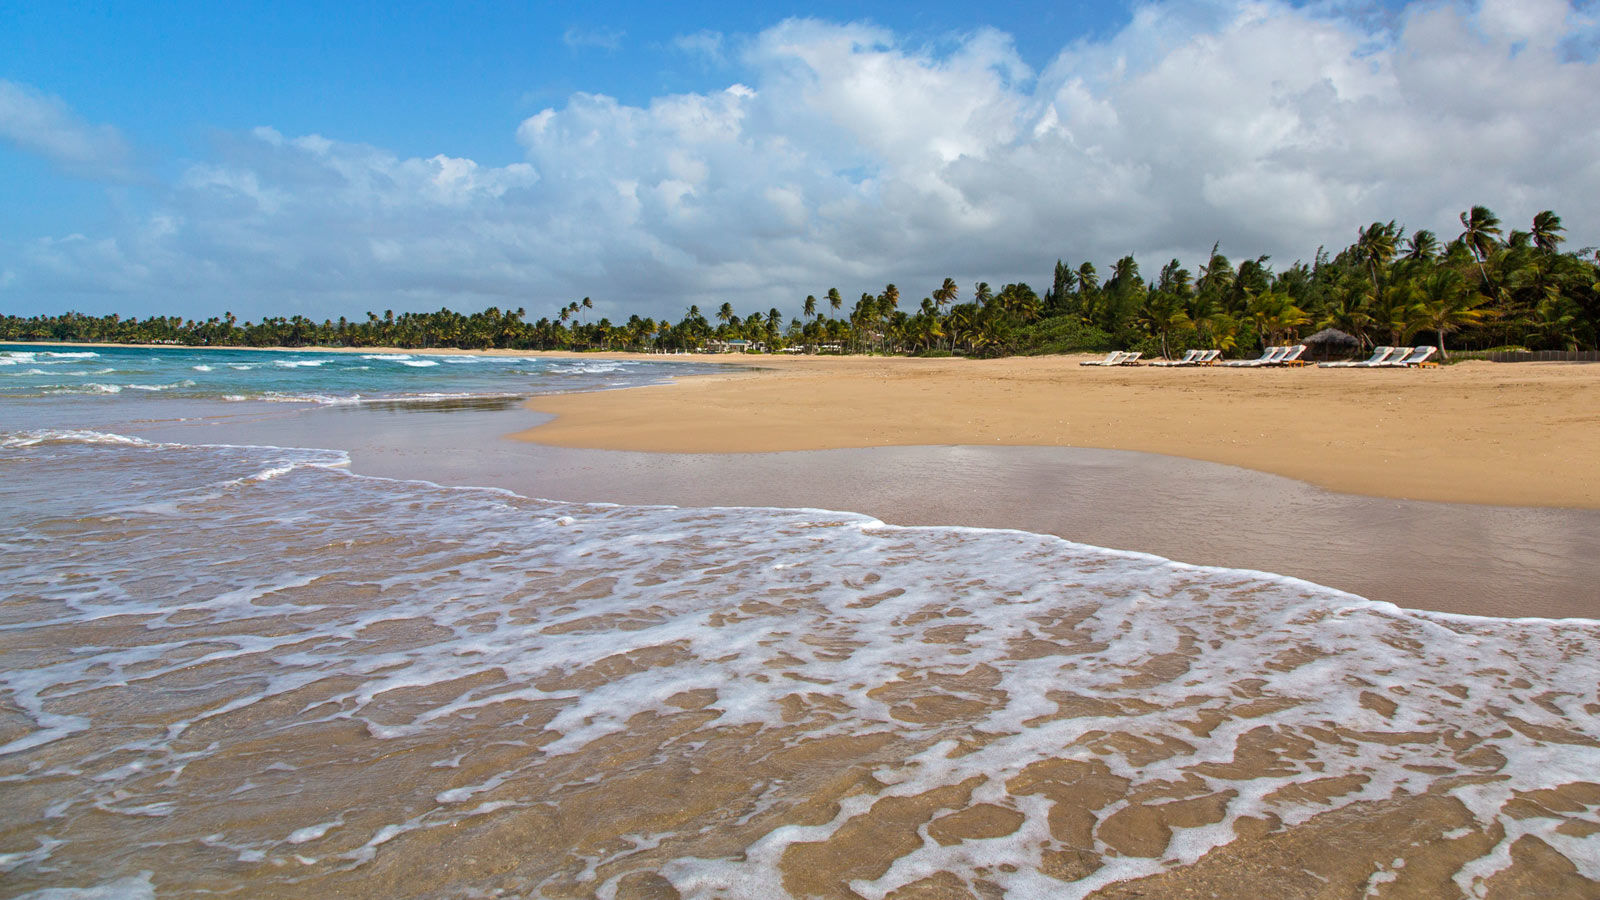 The St. Regis Bahia Beach Resort - Puerto Rico Honeymoon